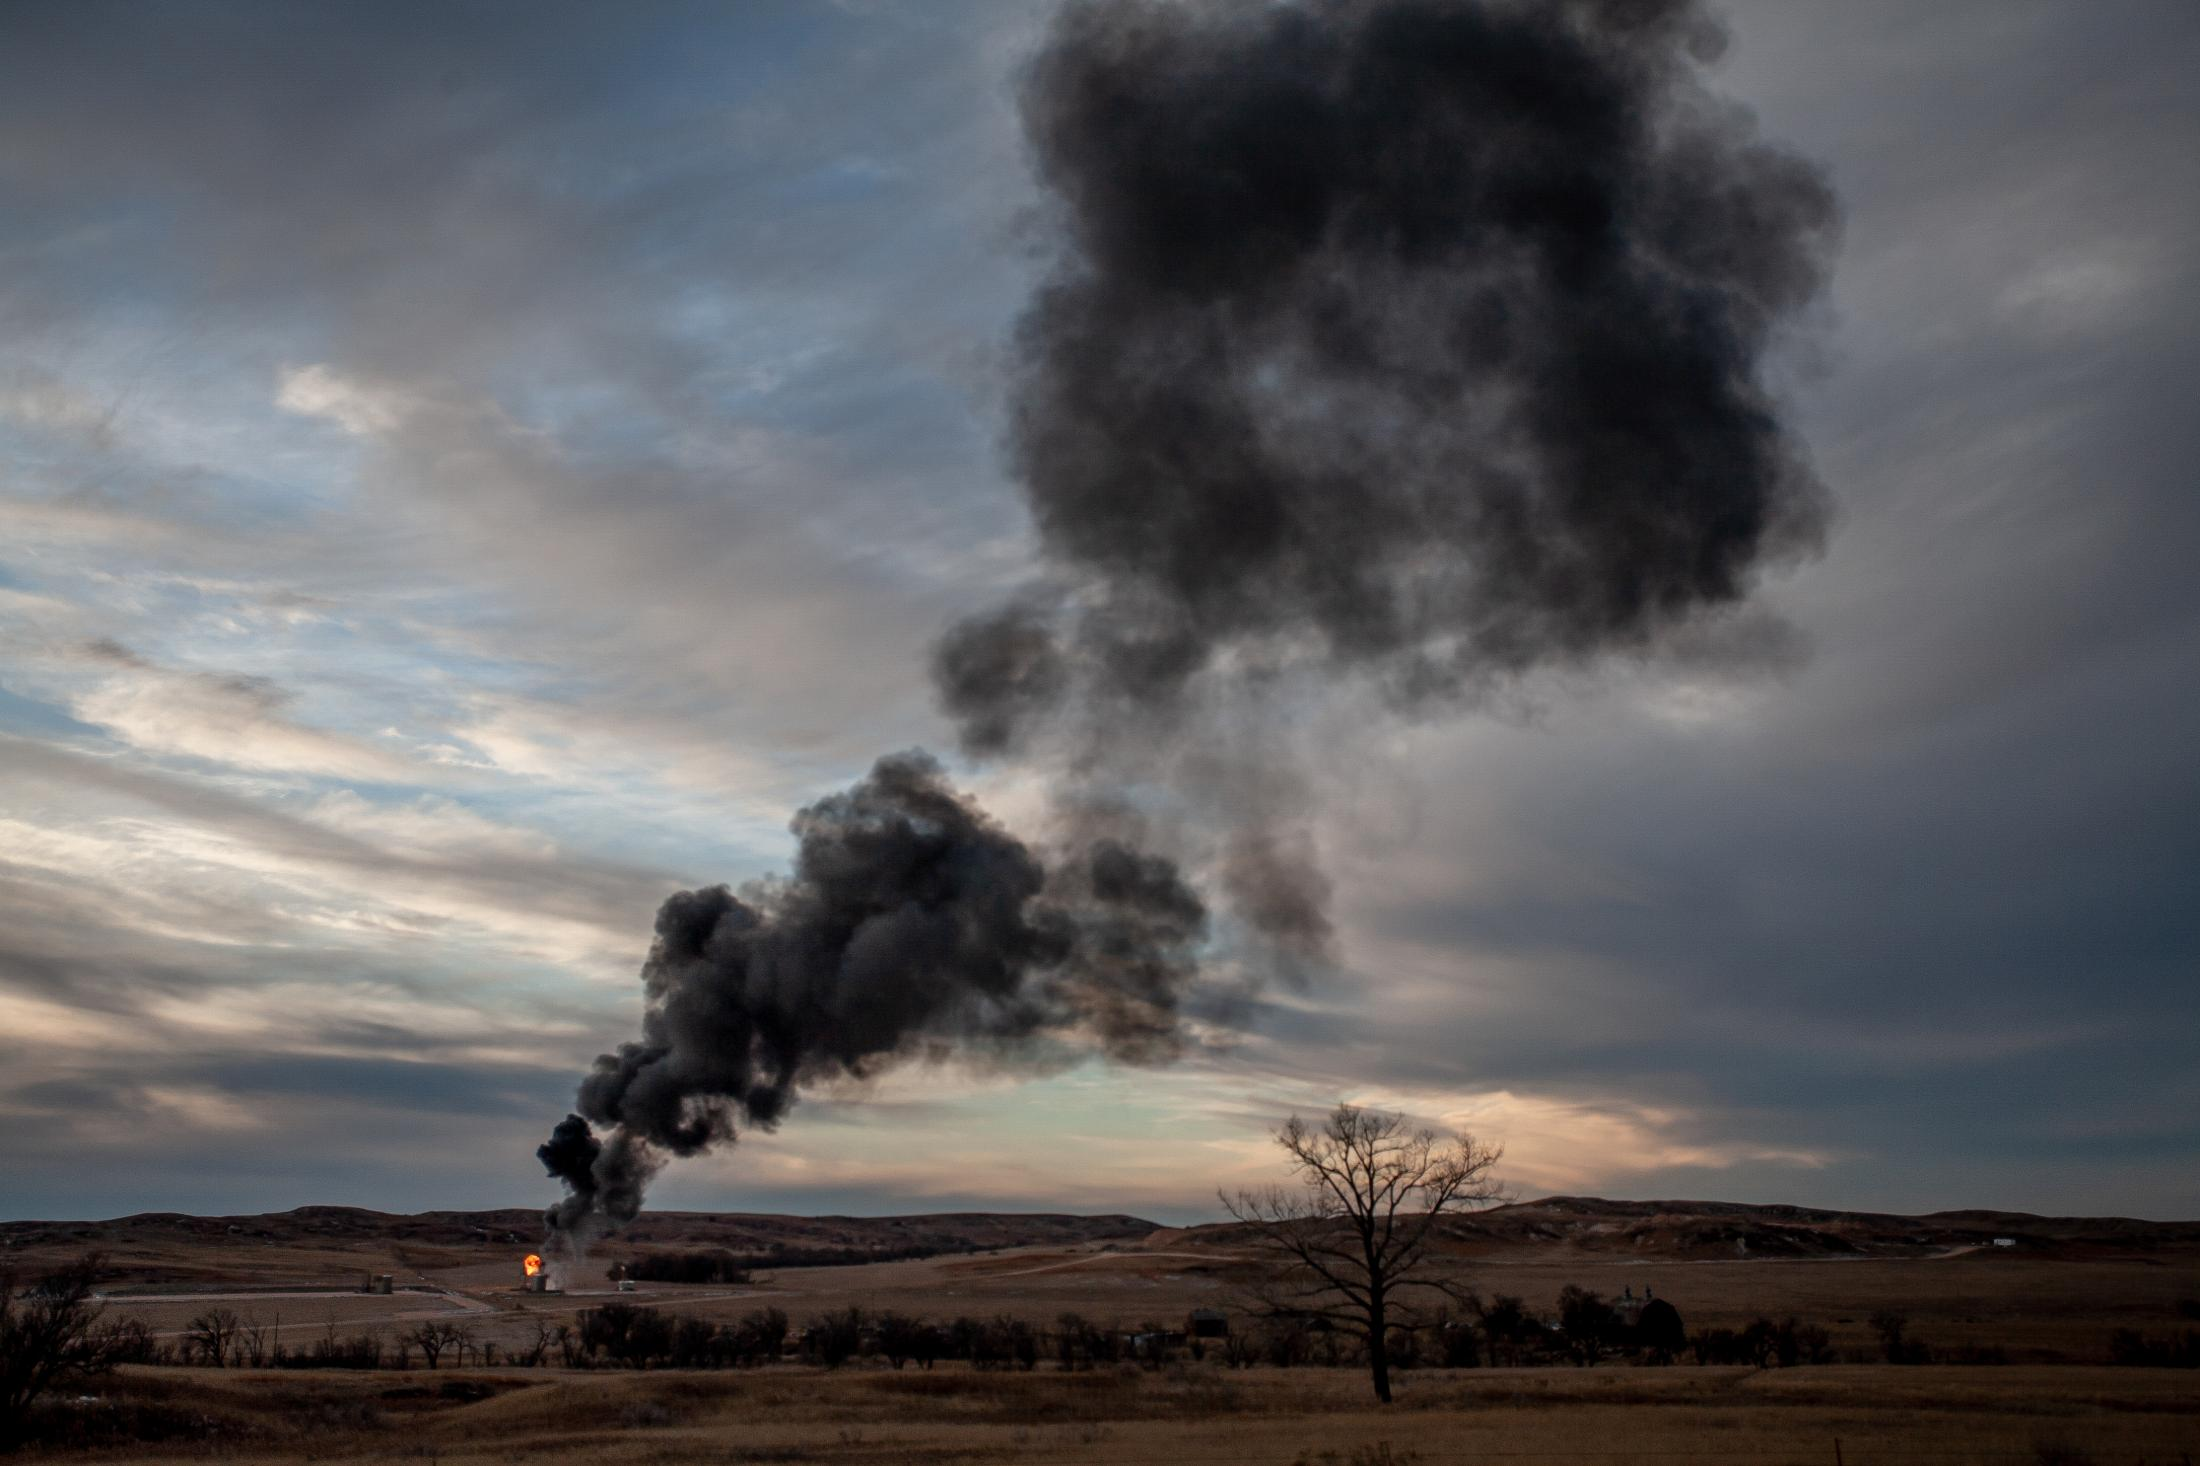 2/7/14- North Dakota - Smoke shoots to the sky from a natural gas flame that has been flooded with oil. Well sights that have pump jacks on them are inspected and emptied daily, but things go wrong with the land's extreme conditions.